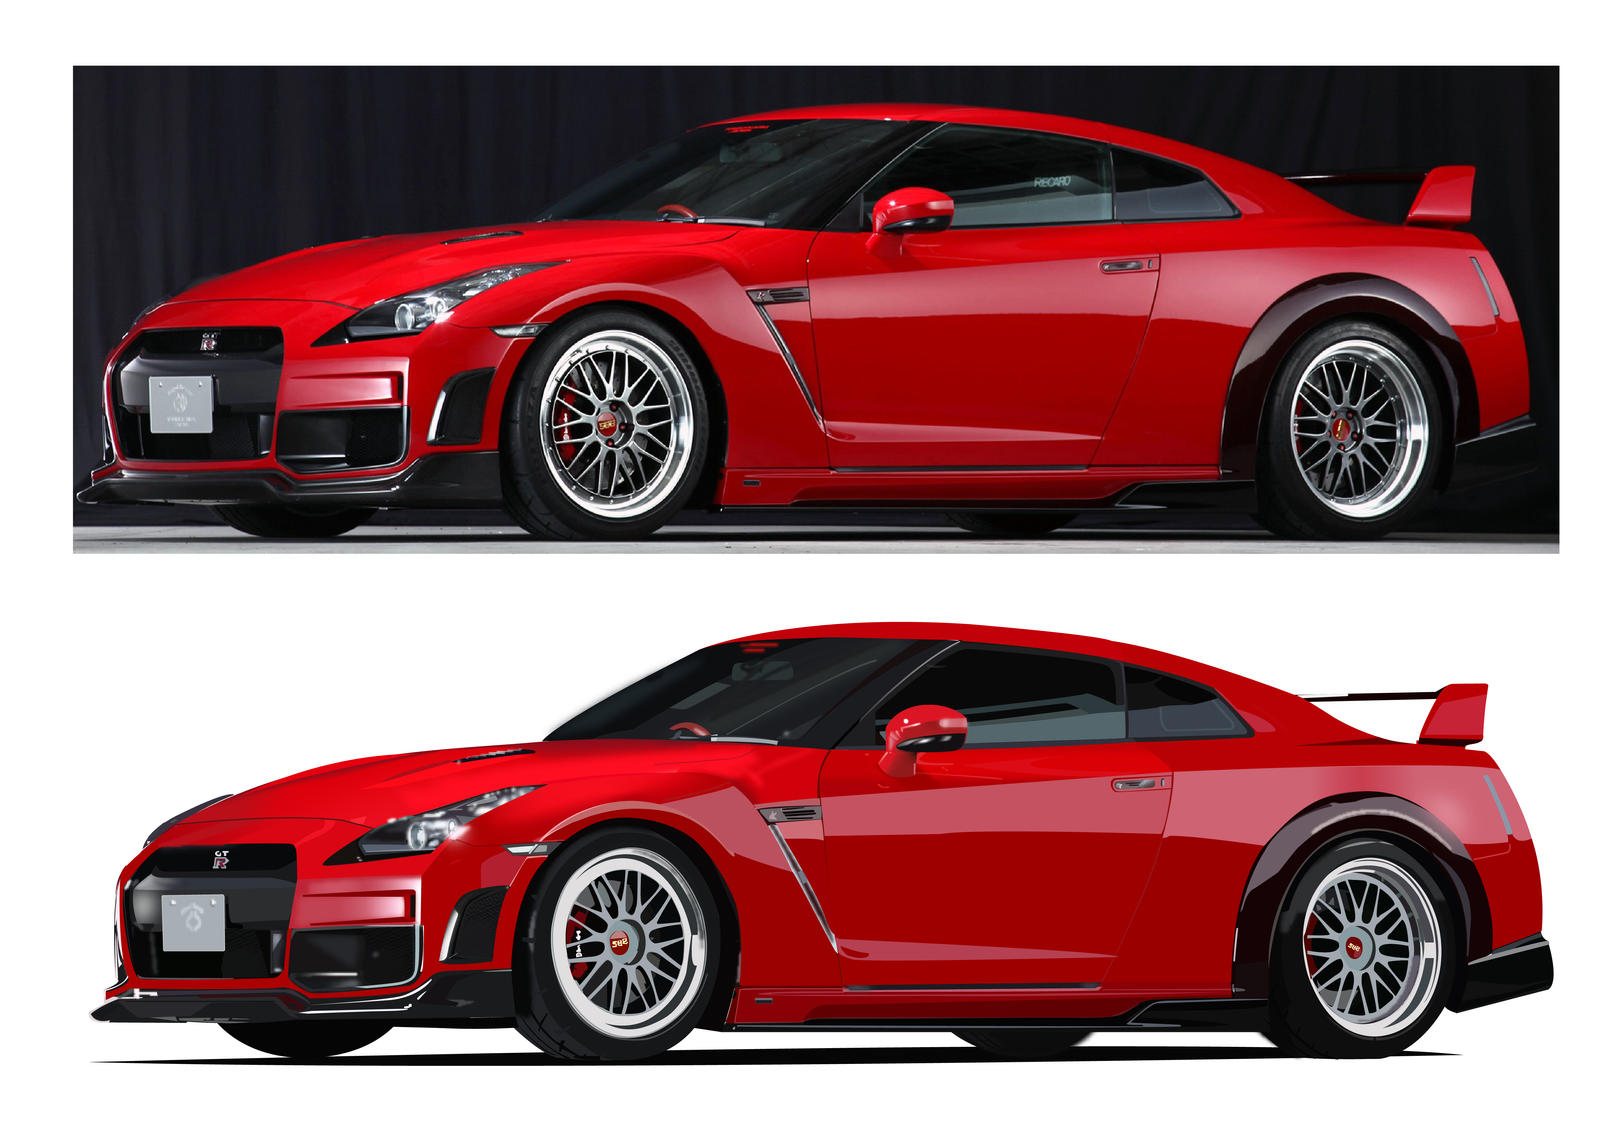 Red Sports Car FINISHED By DarknessRise On DeviantArt - Red sports car